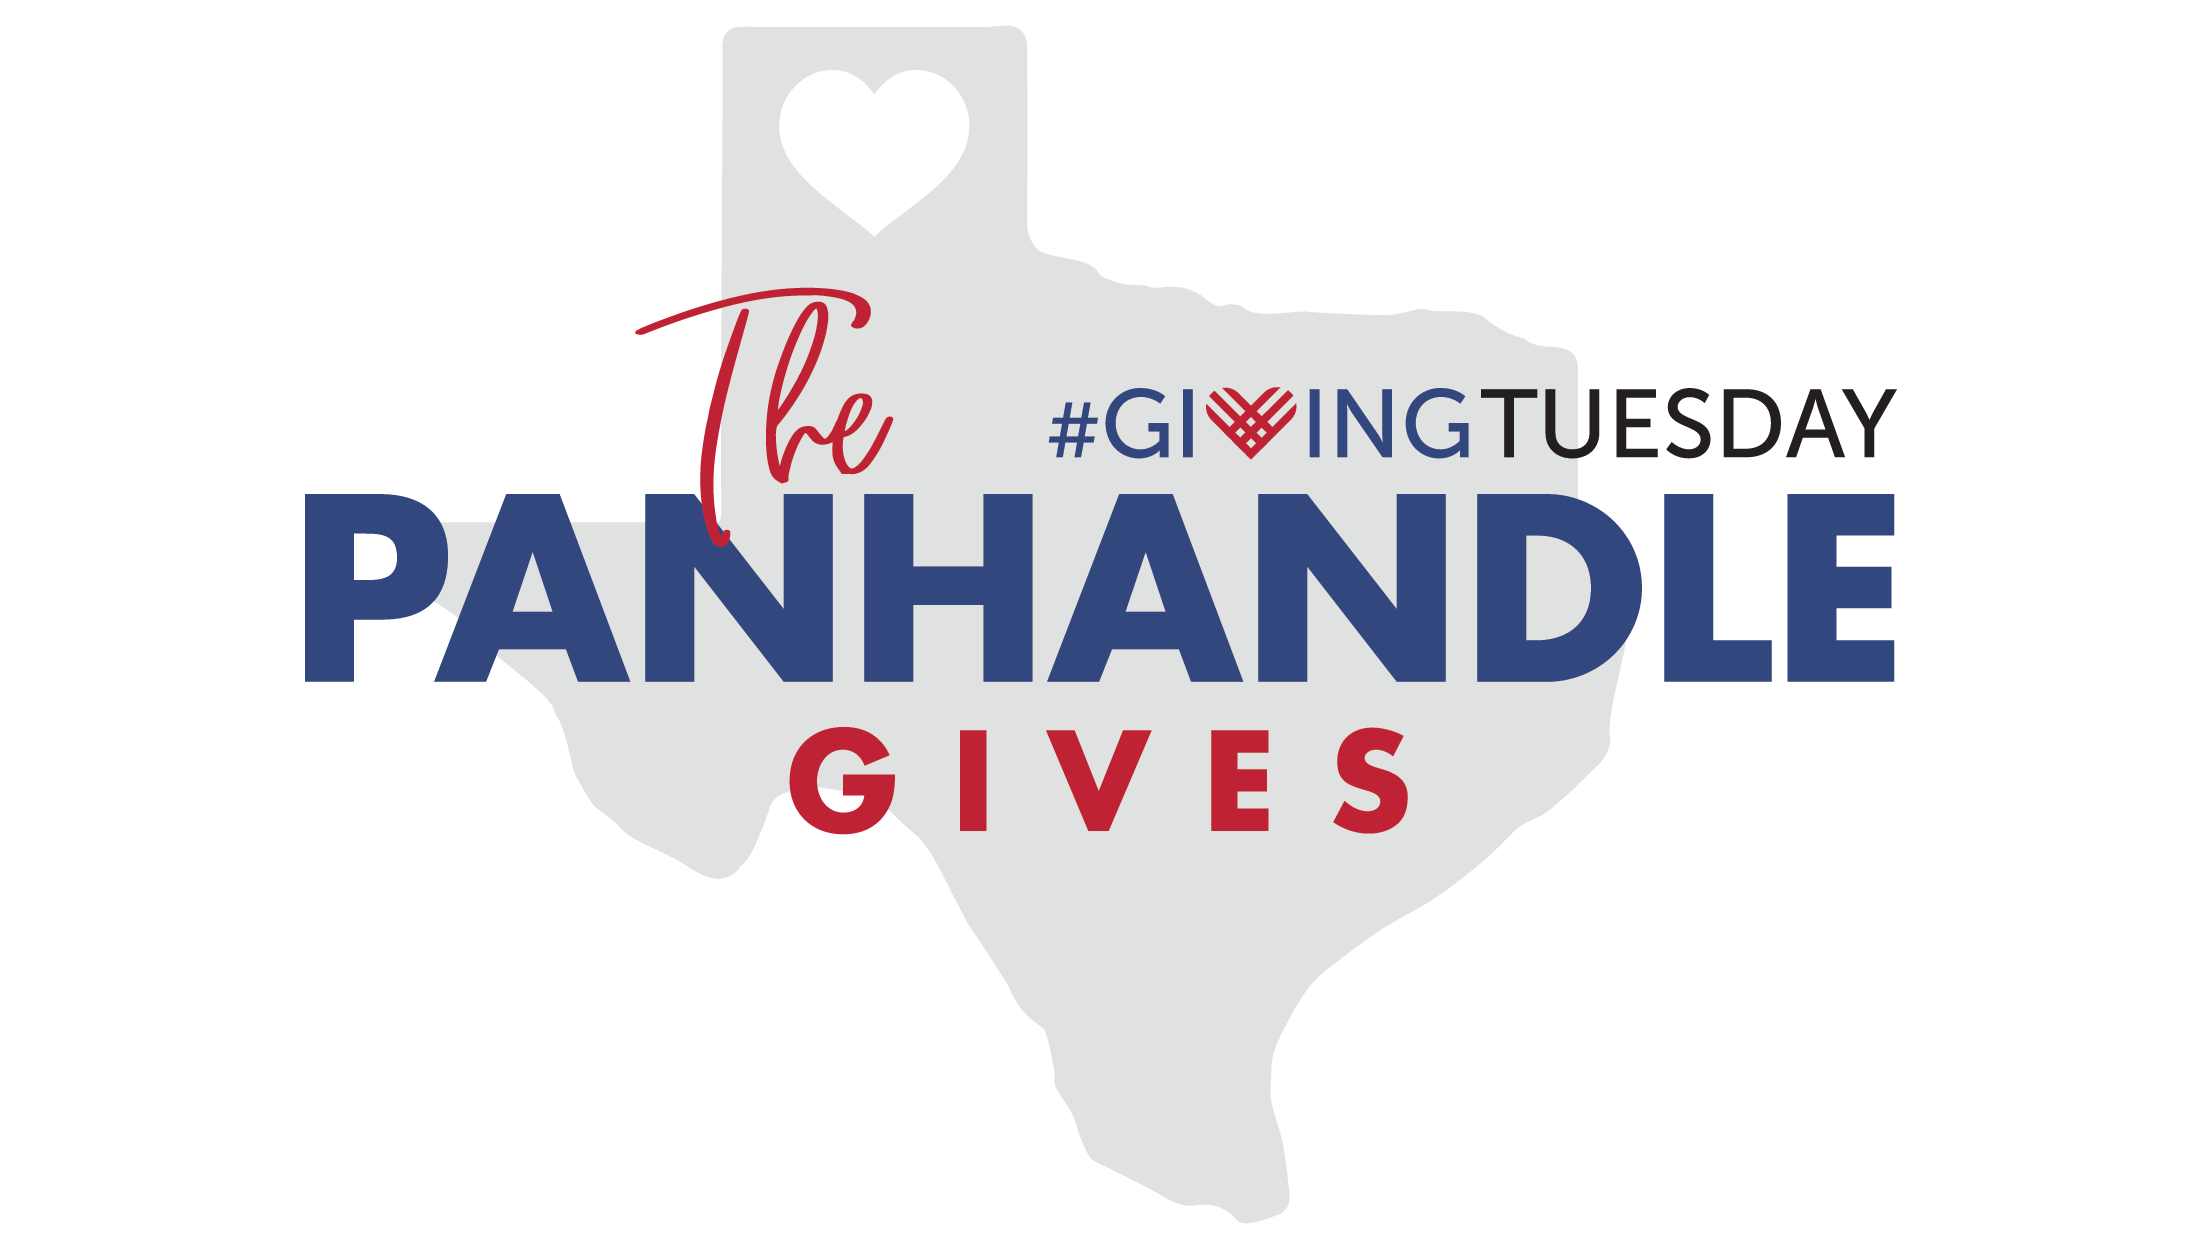 Panhandle PBS will take part in global #GivingTuesday movement